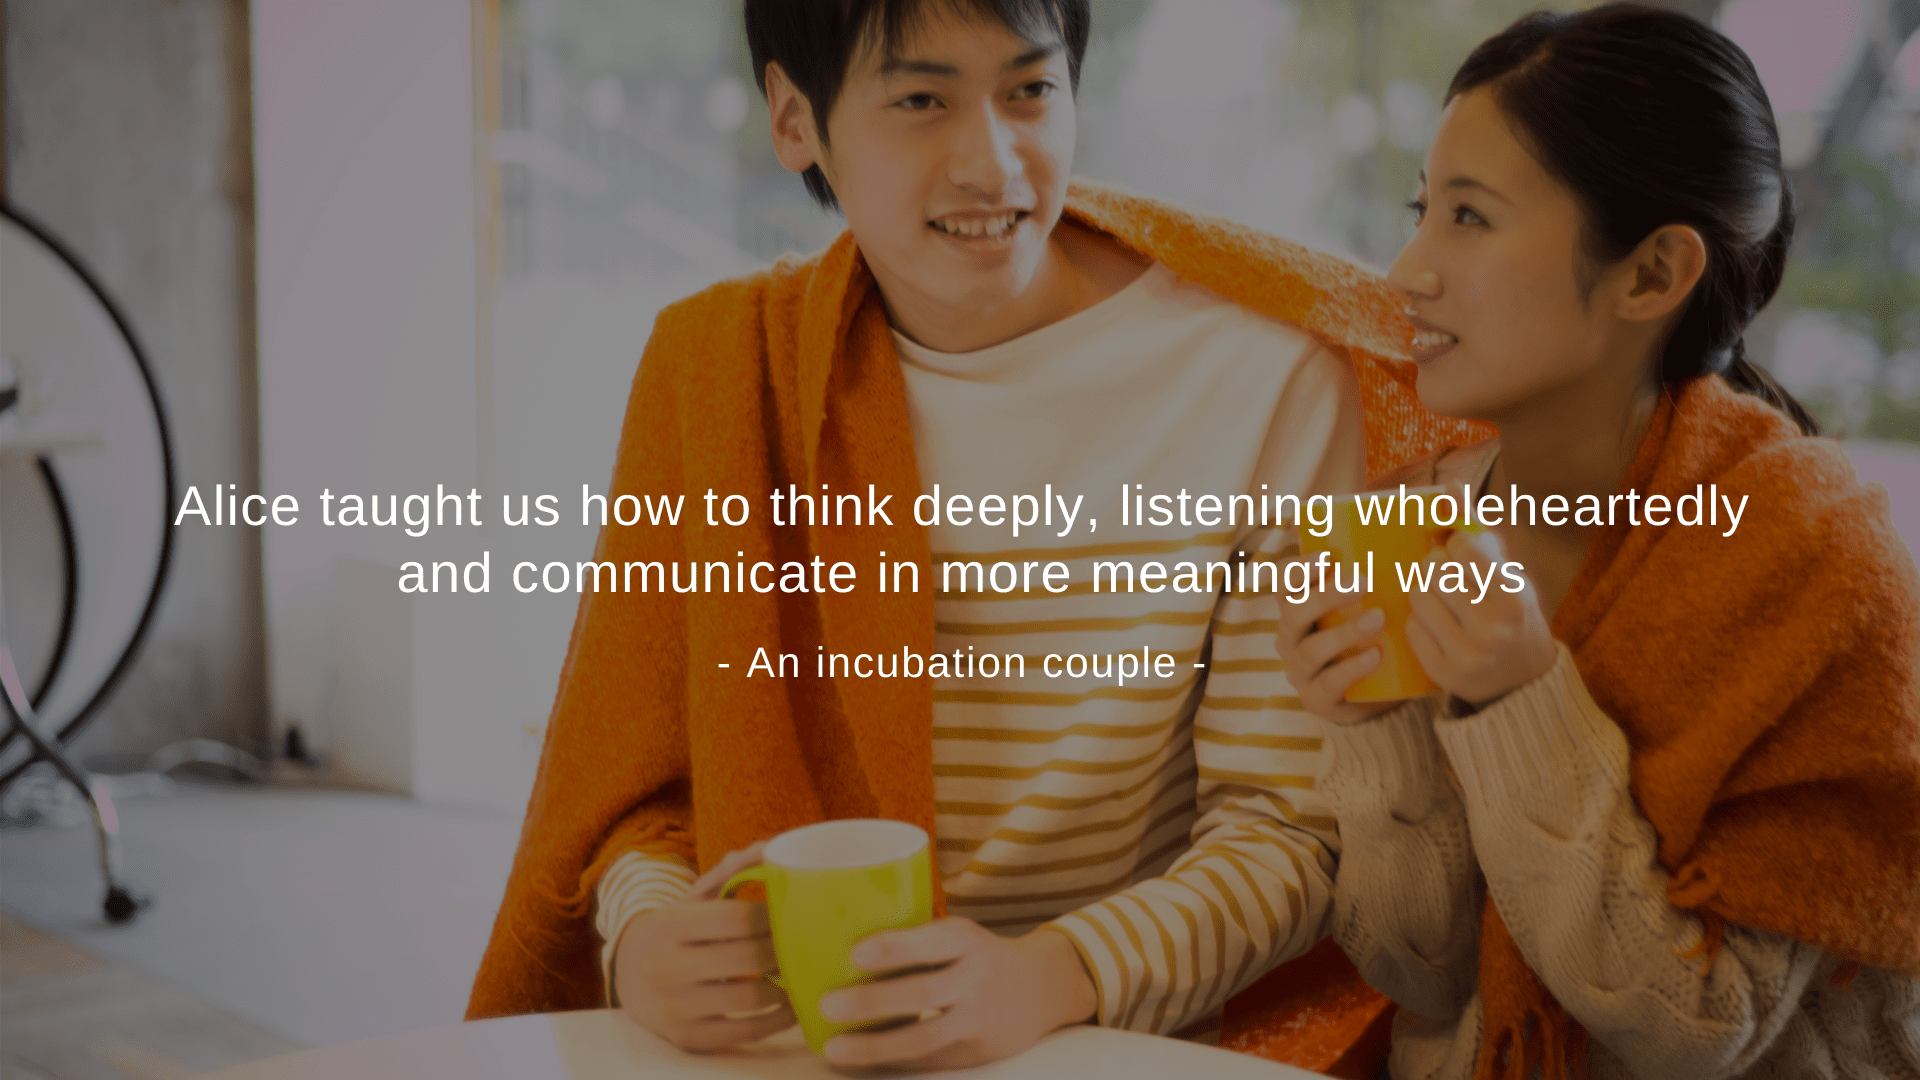 """Alice taught us how to think deeply, listening wholeheartedly and communicate in more meaningful ways."" An incubation couple"